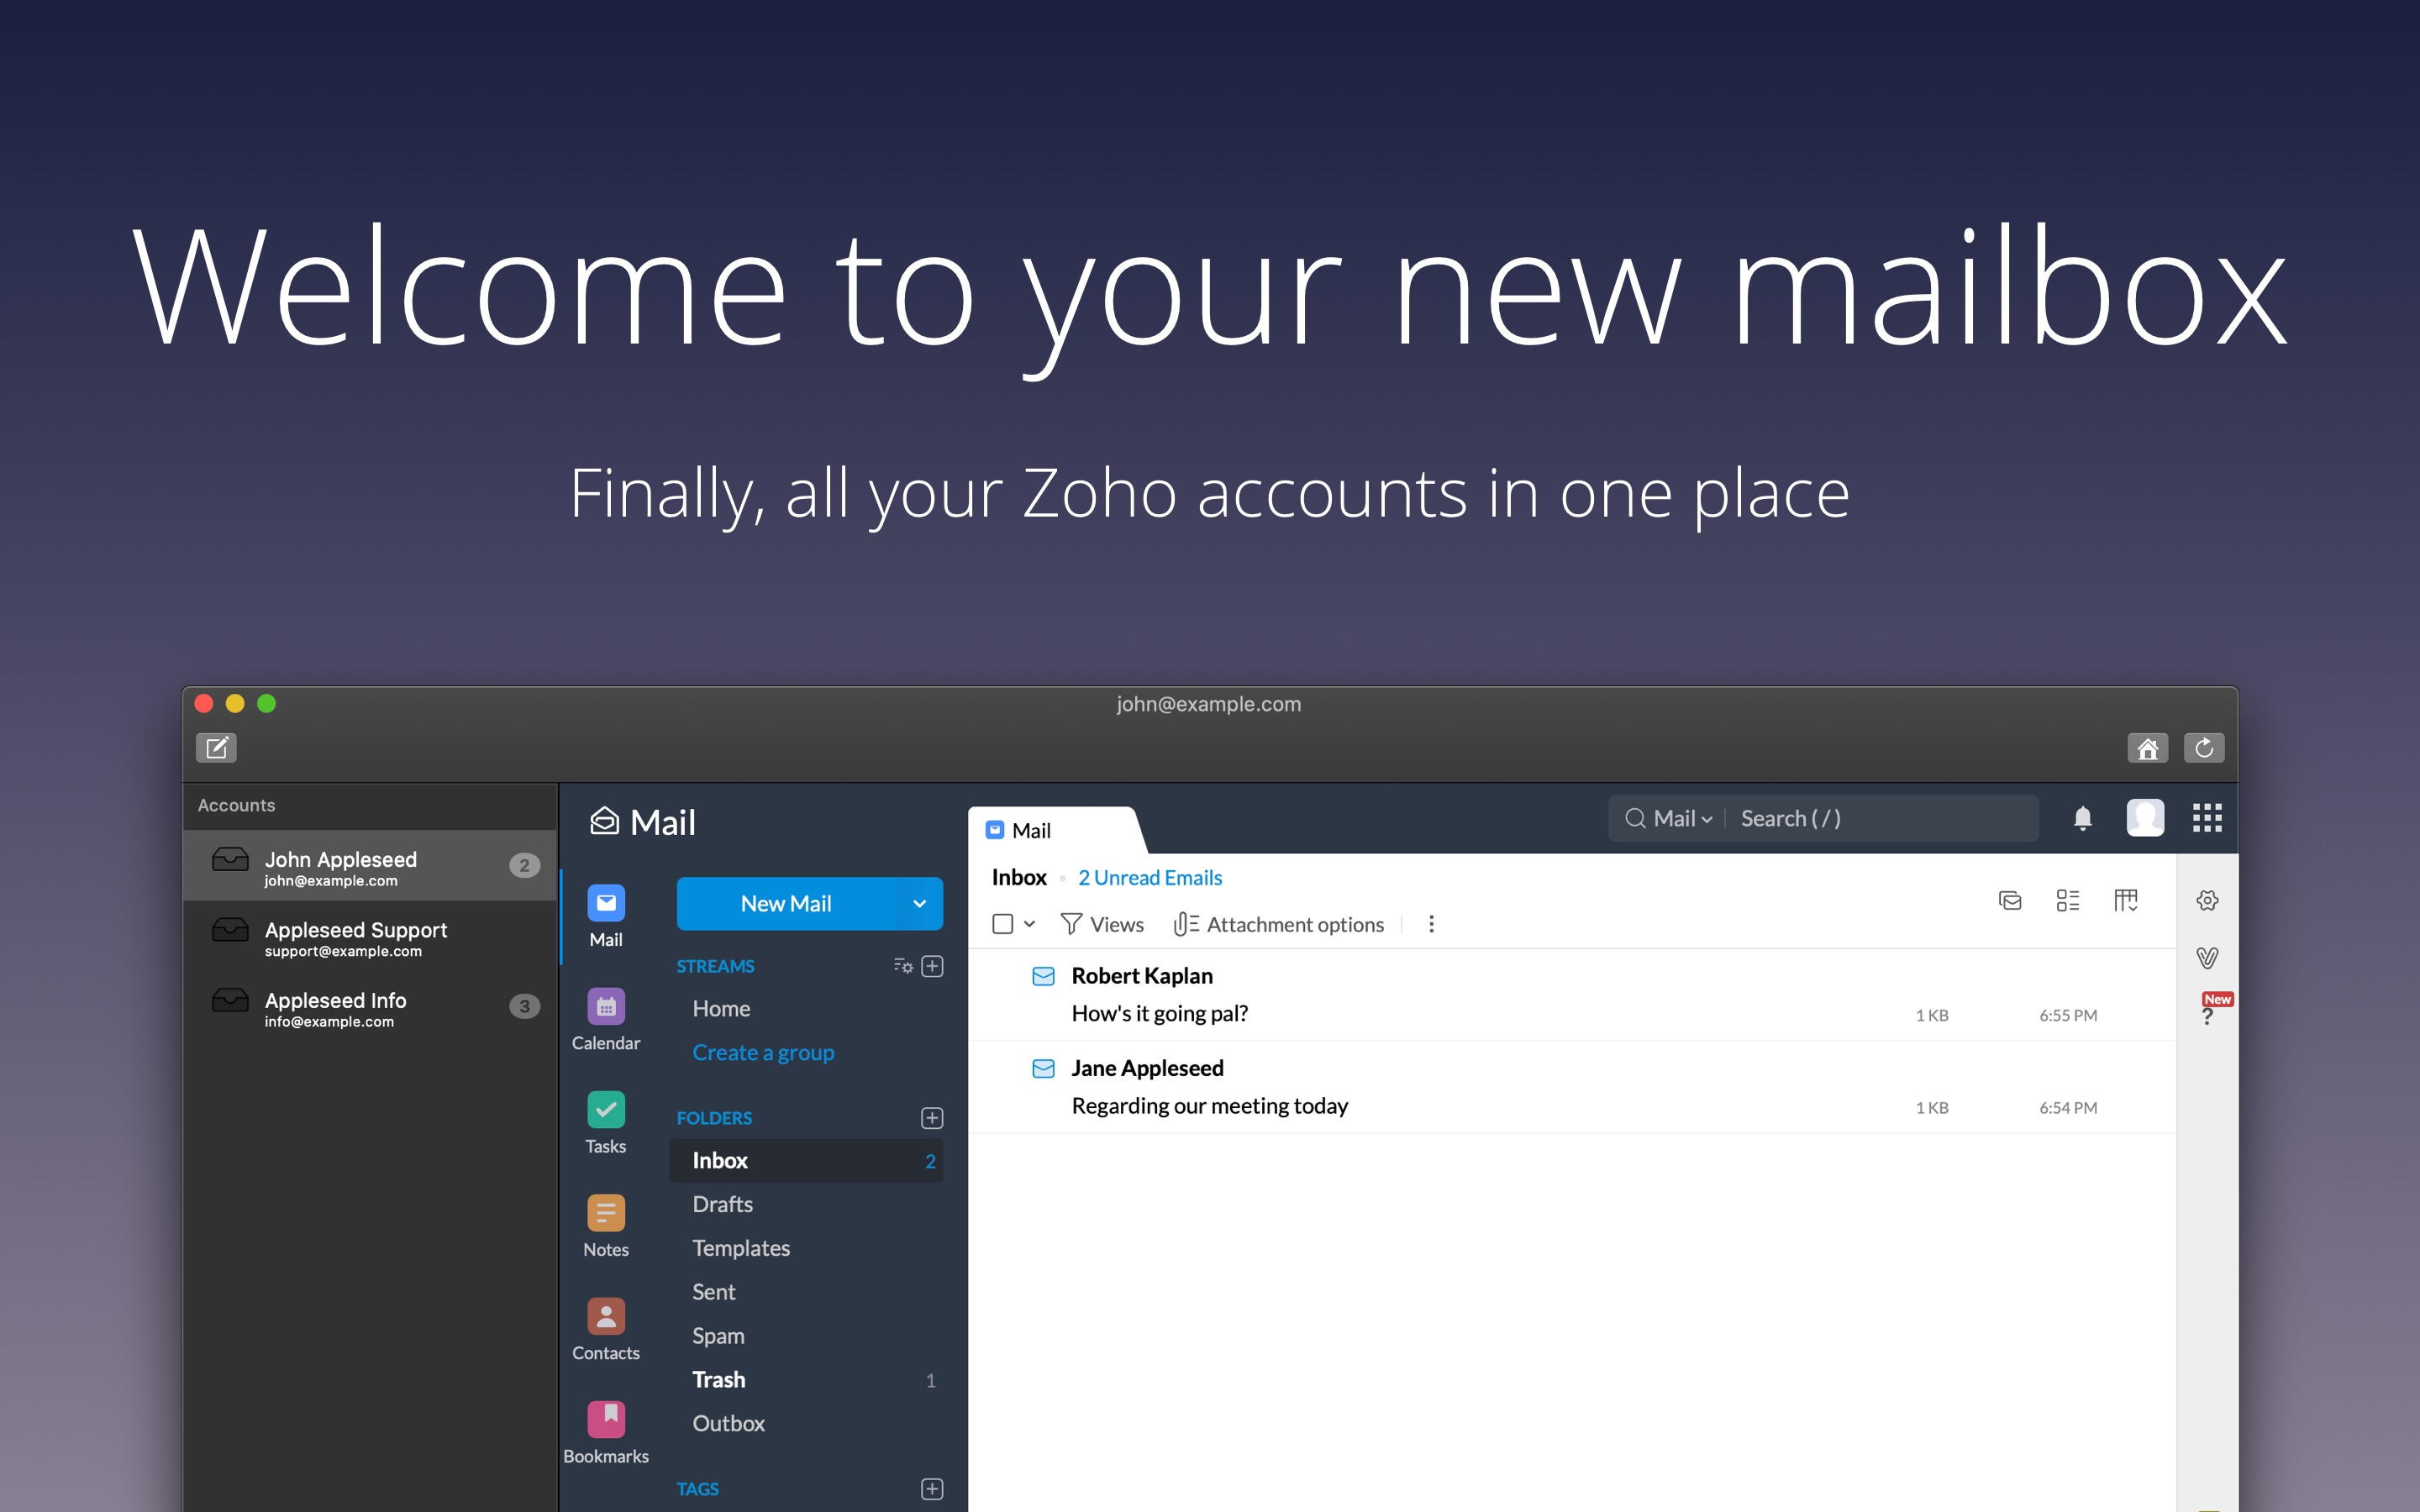 all your Zoho accounts in one place; multi-accounts supported.